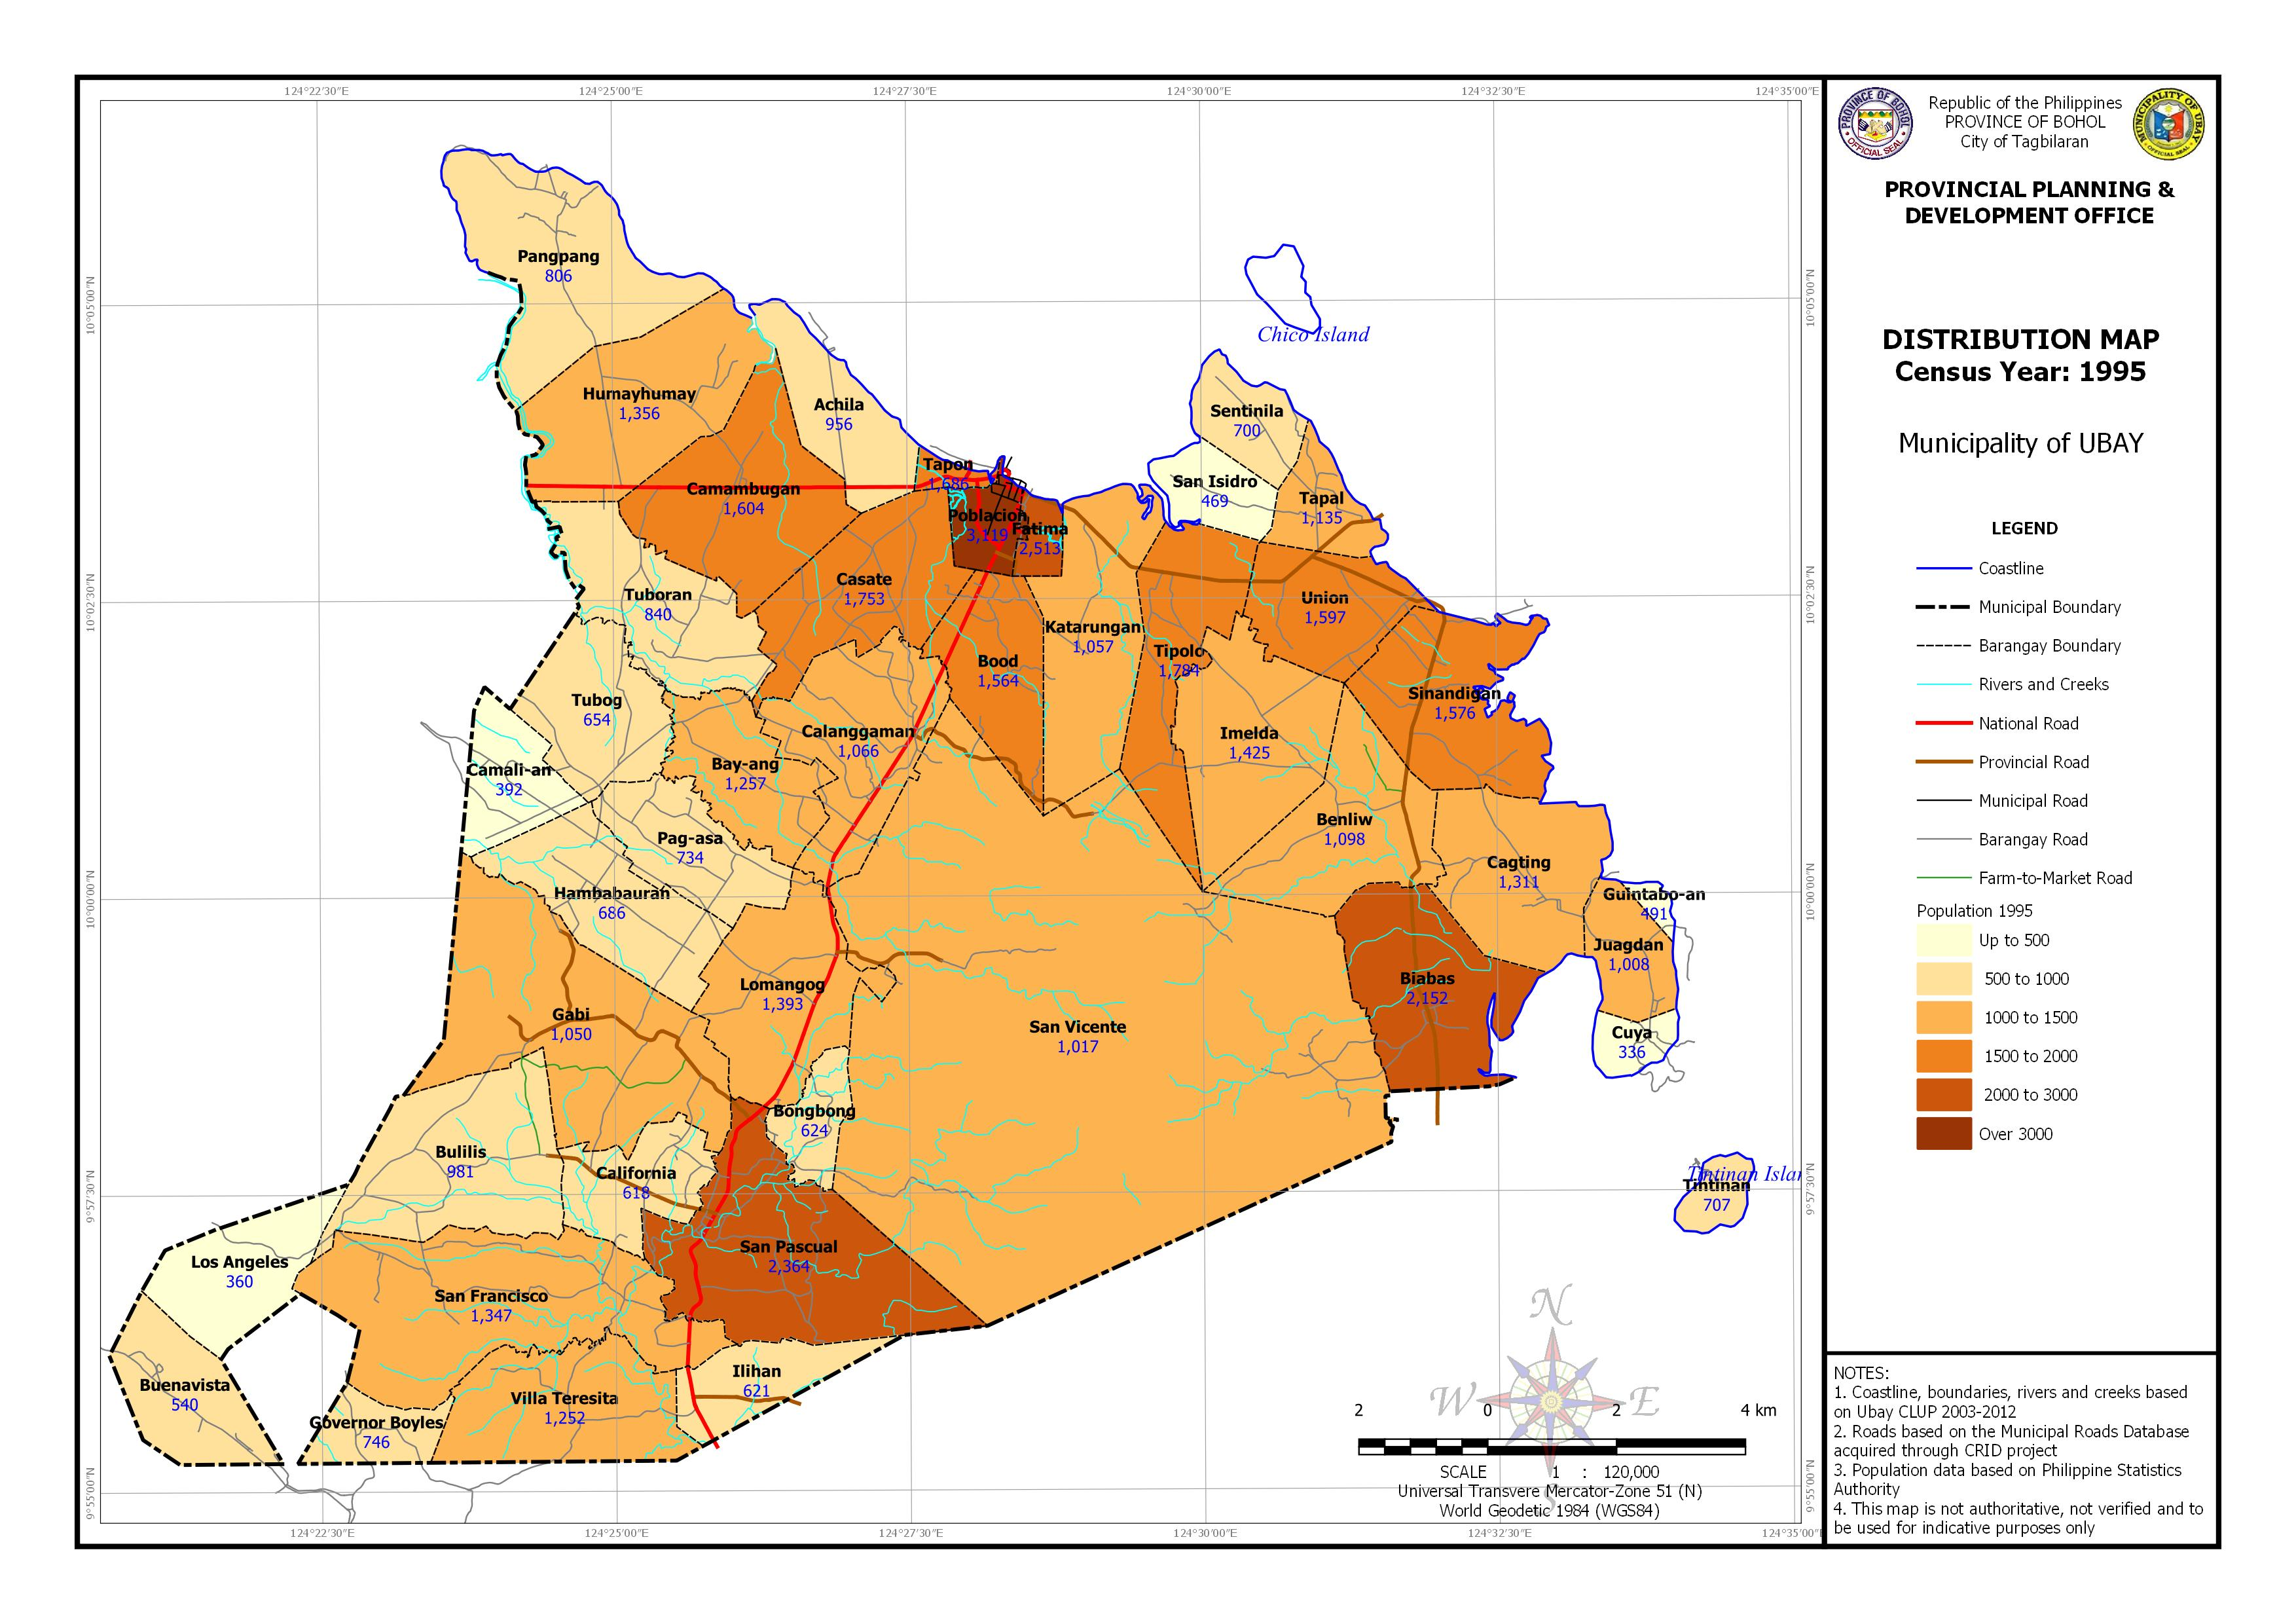 Population Distribution Census Year:1995 Map